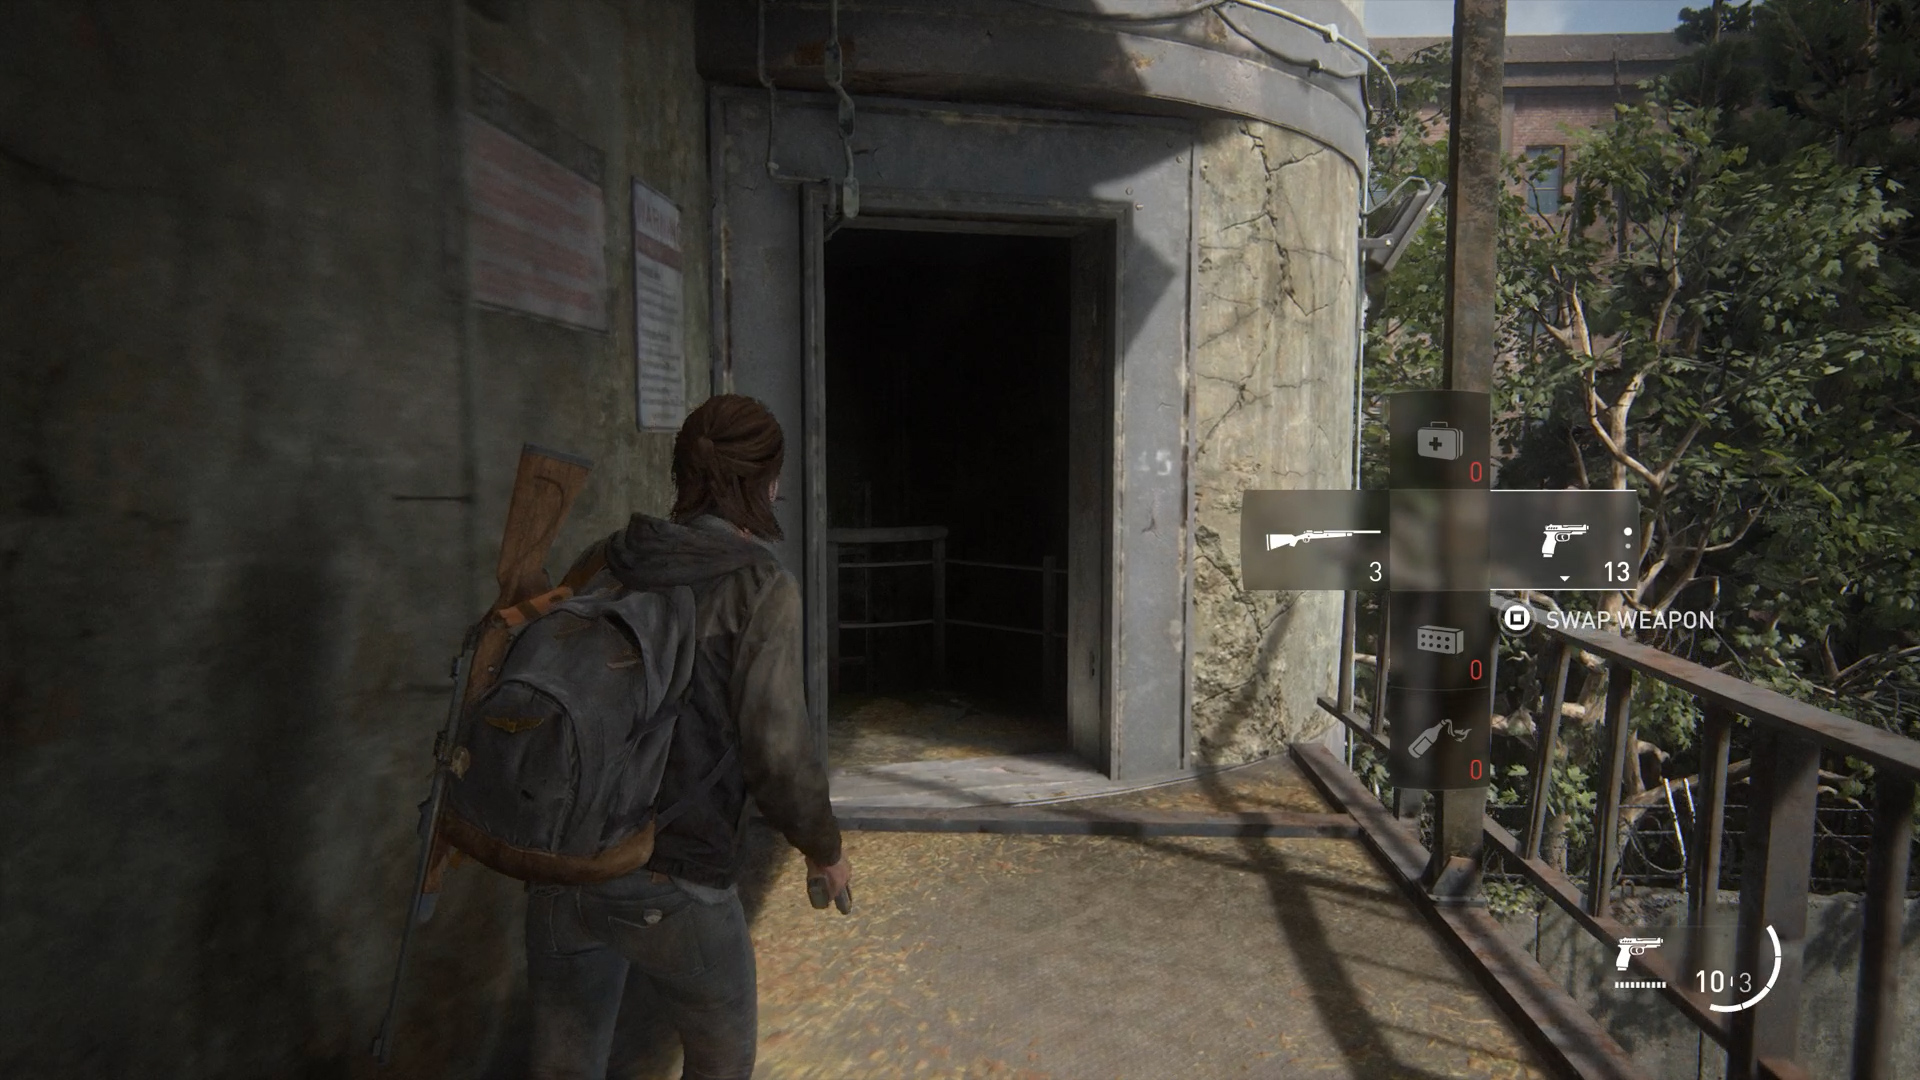 Trading Card locations in Tlou2 - Chessmaster